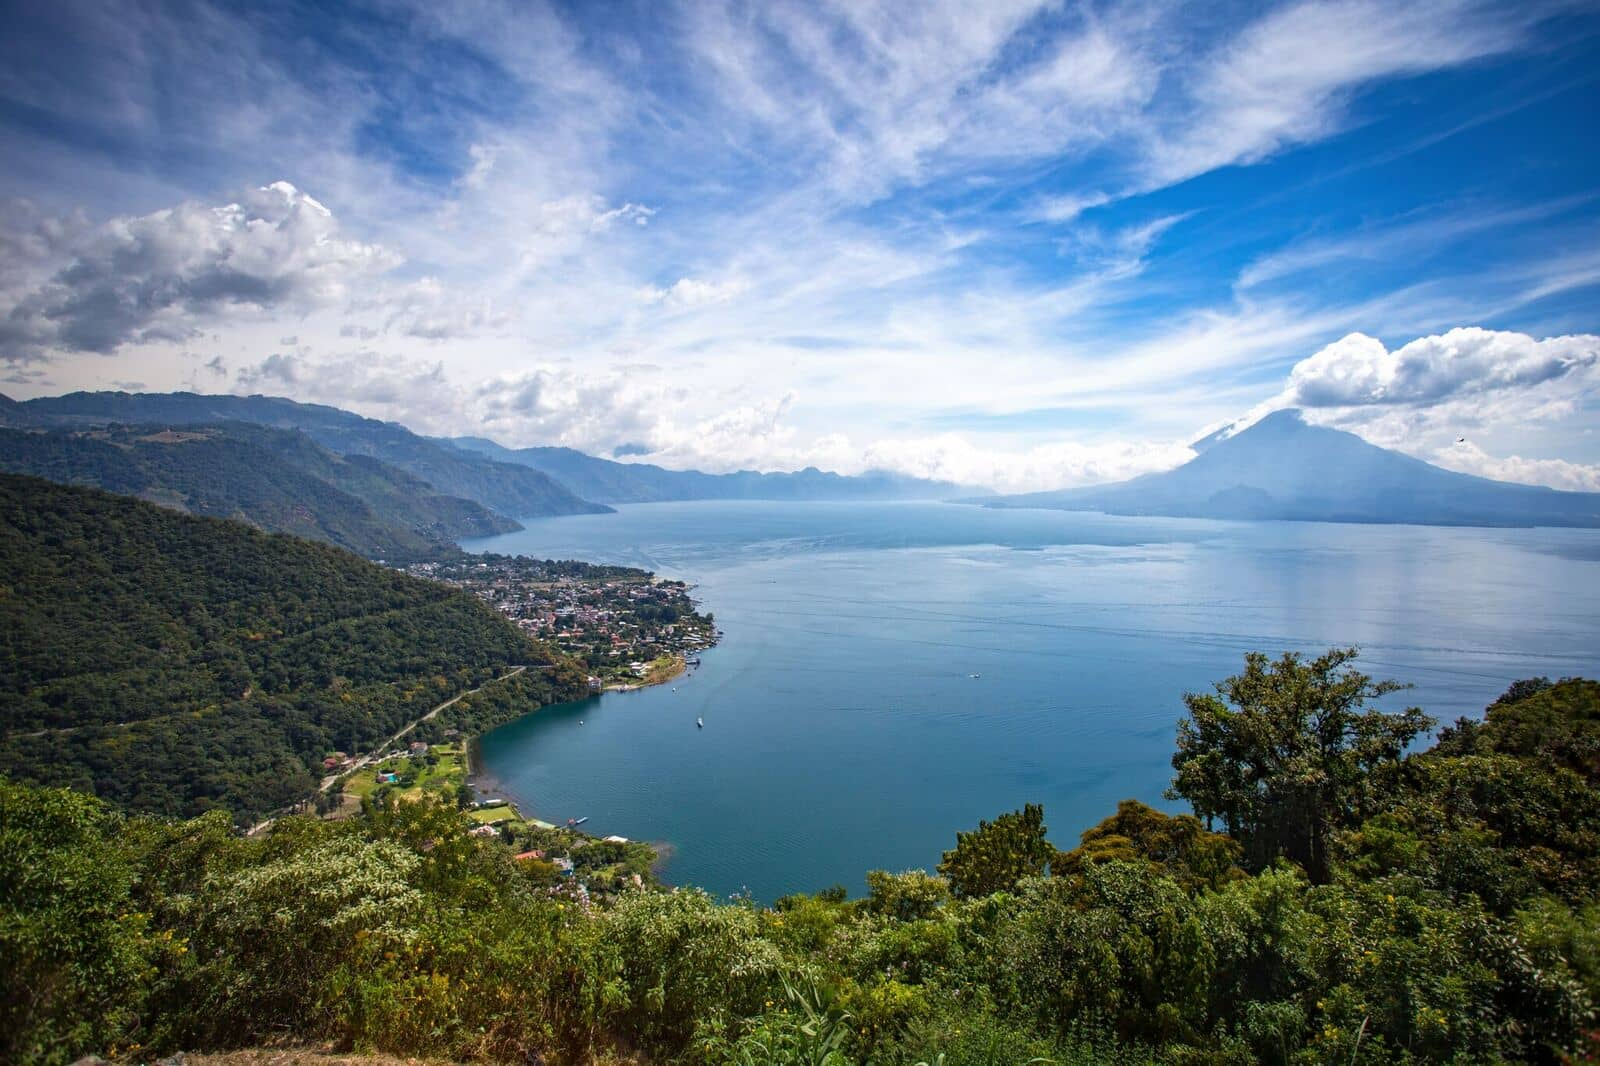 Day 3- Wednesday: Free day at Atitlan